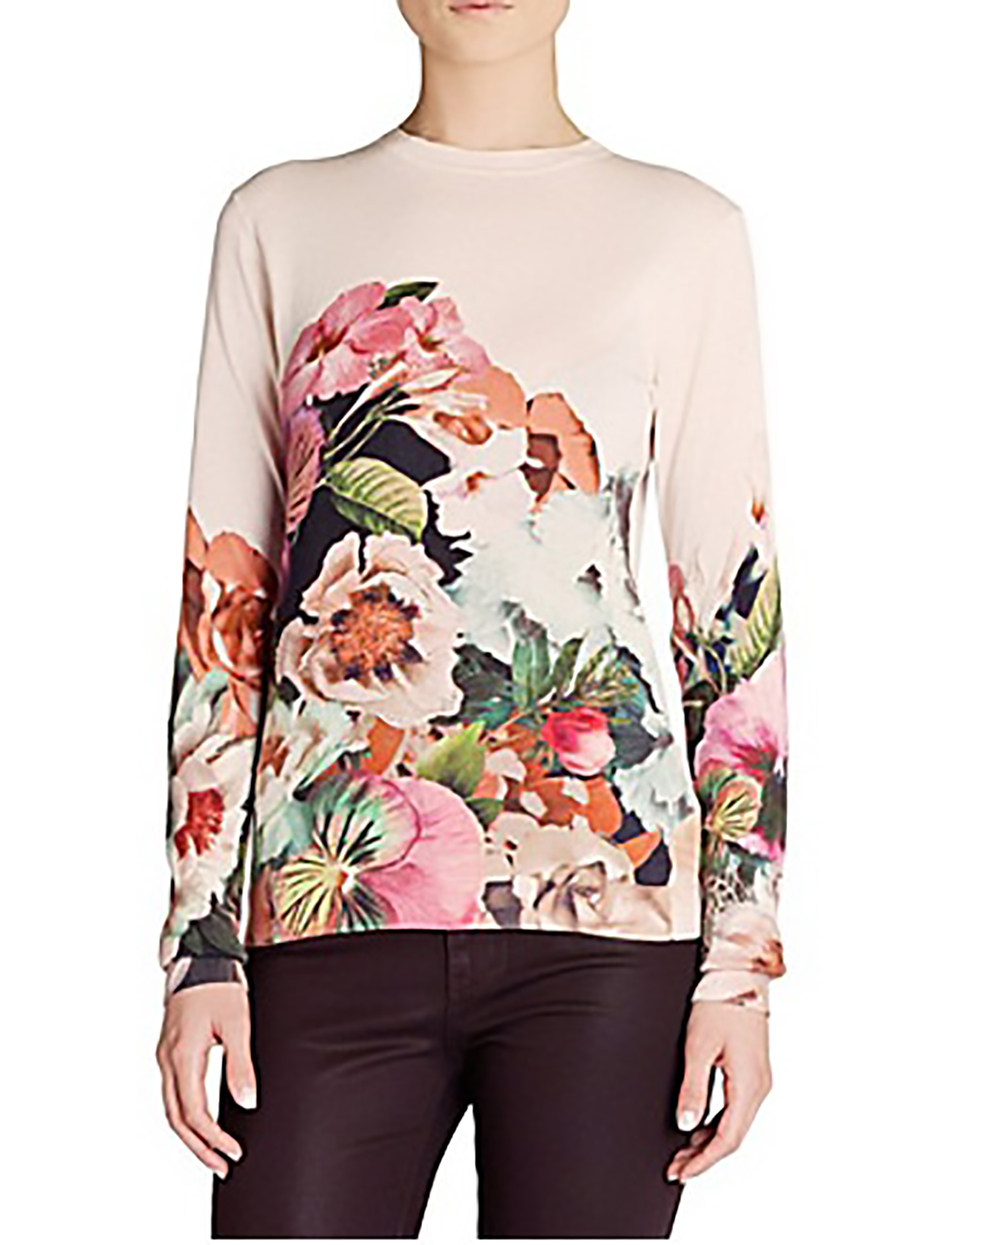 selfridges ted baker tangled floral print jumper winter florals 1500.jpg